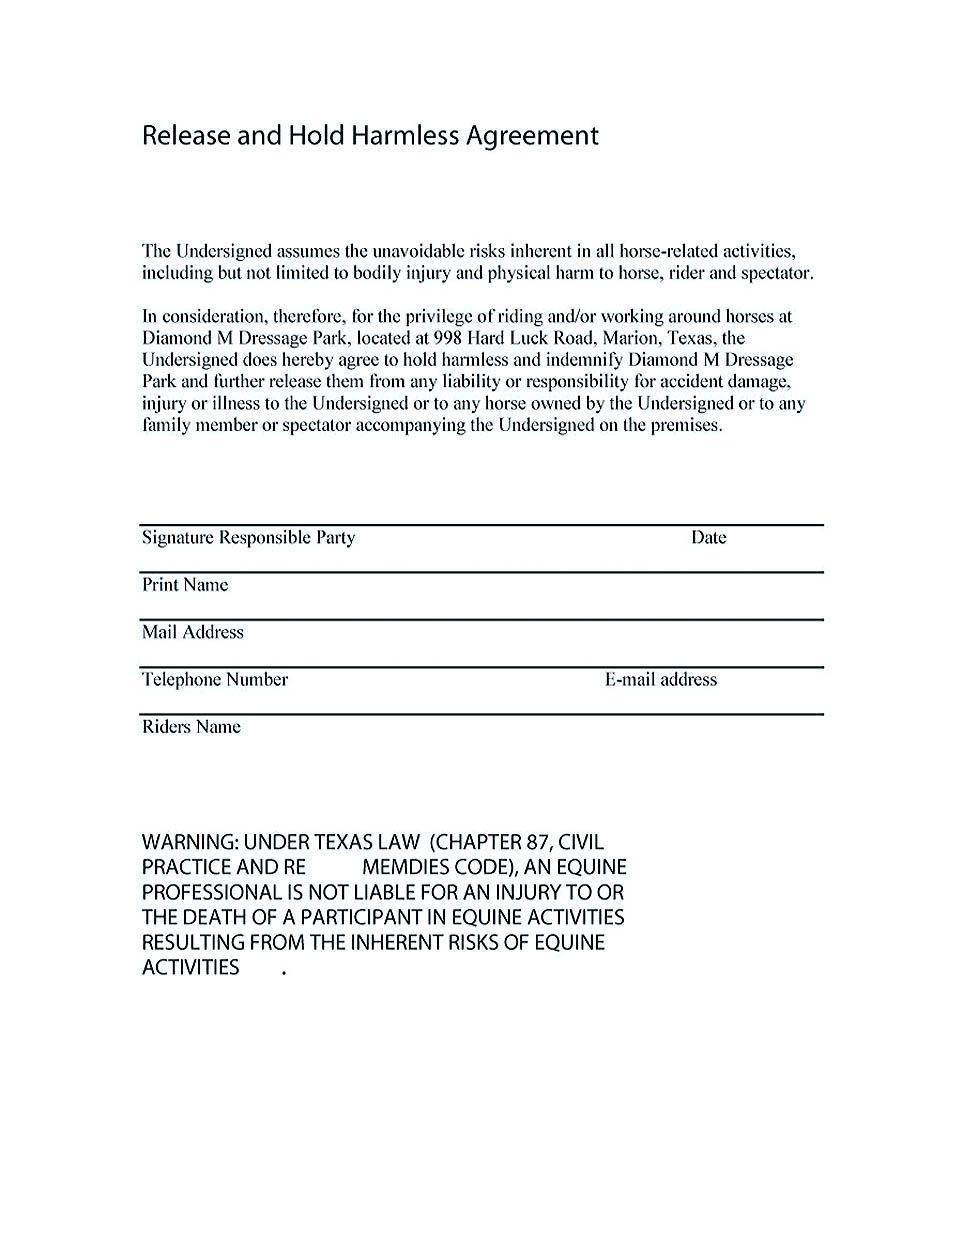 Hold Harmless Agreement Sample Wording Making Hold